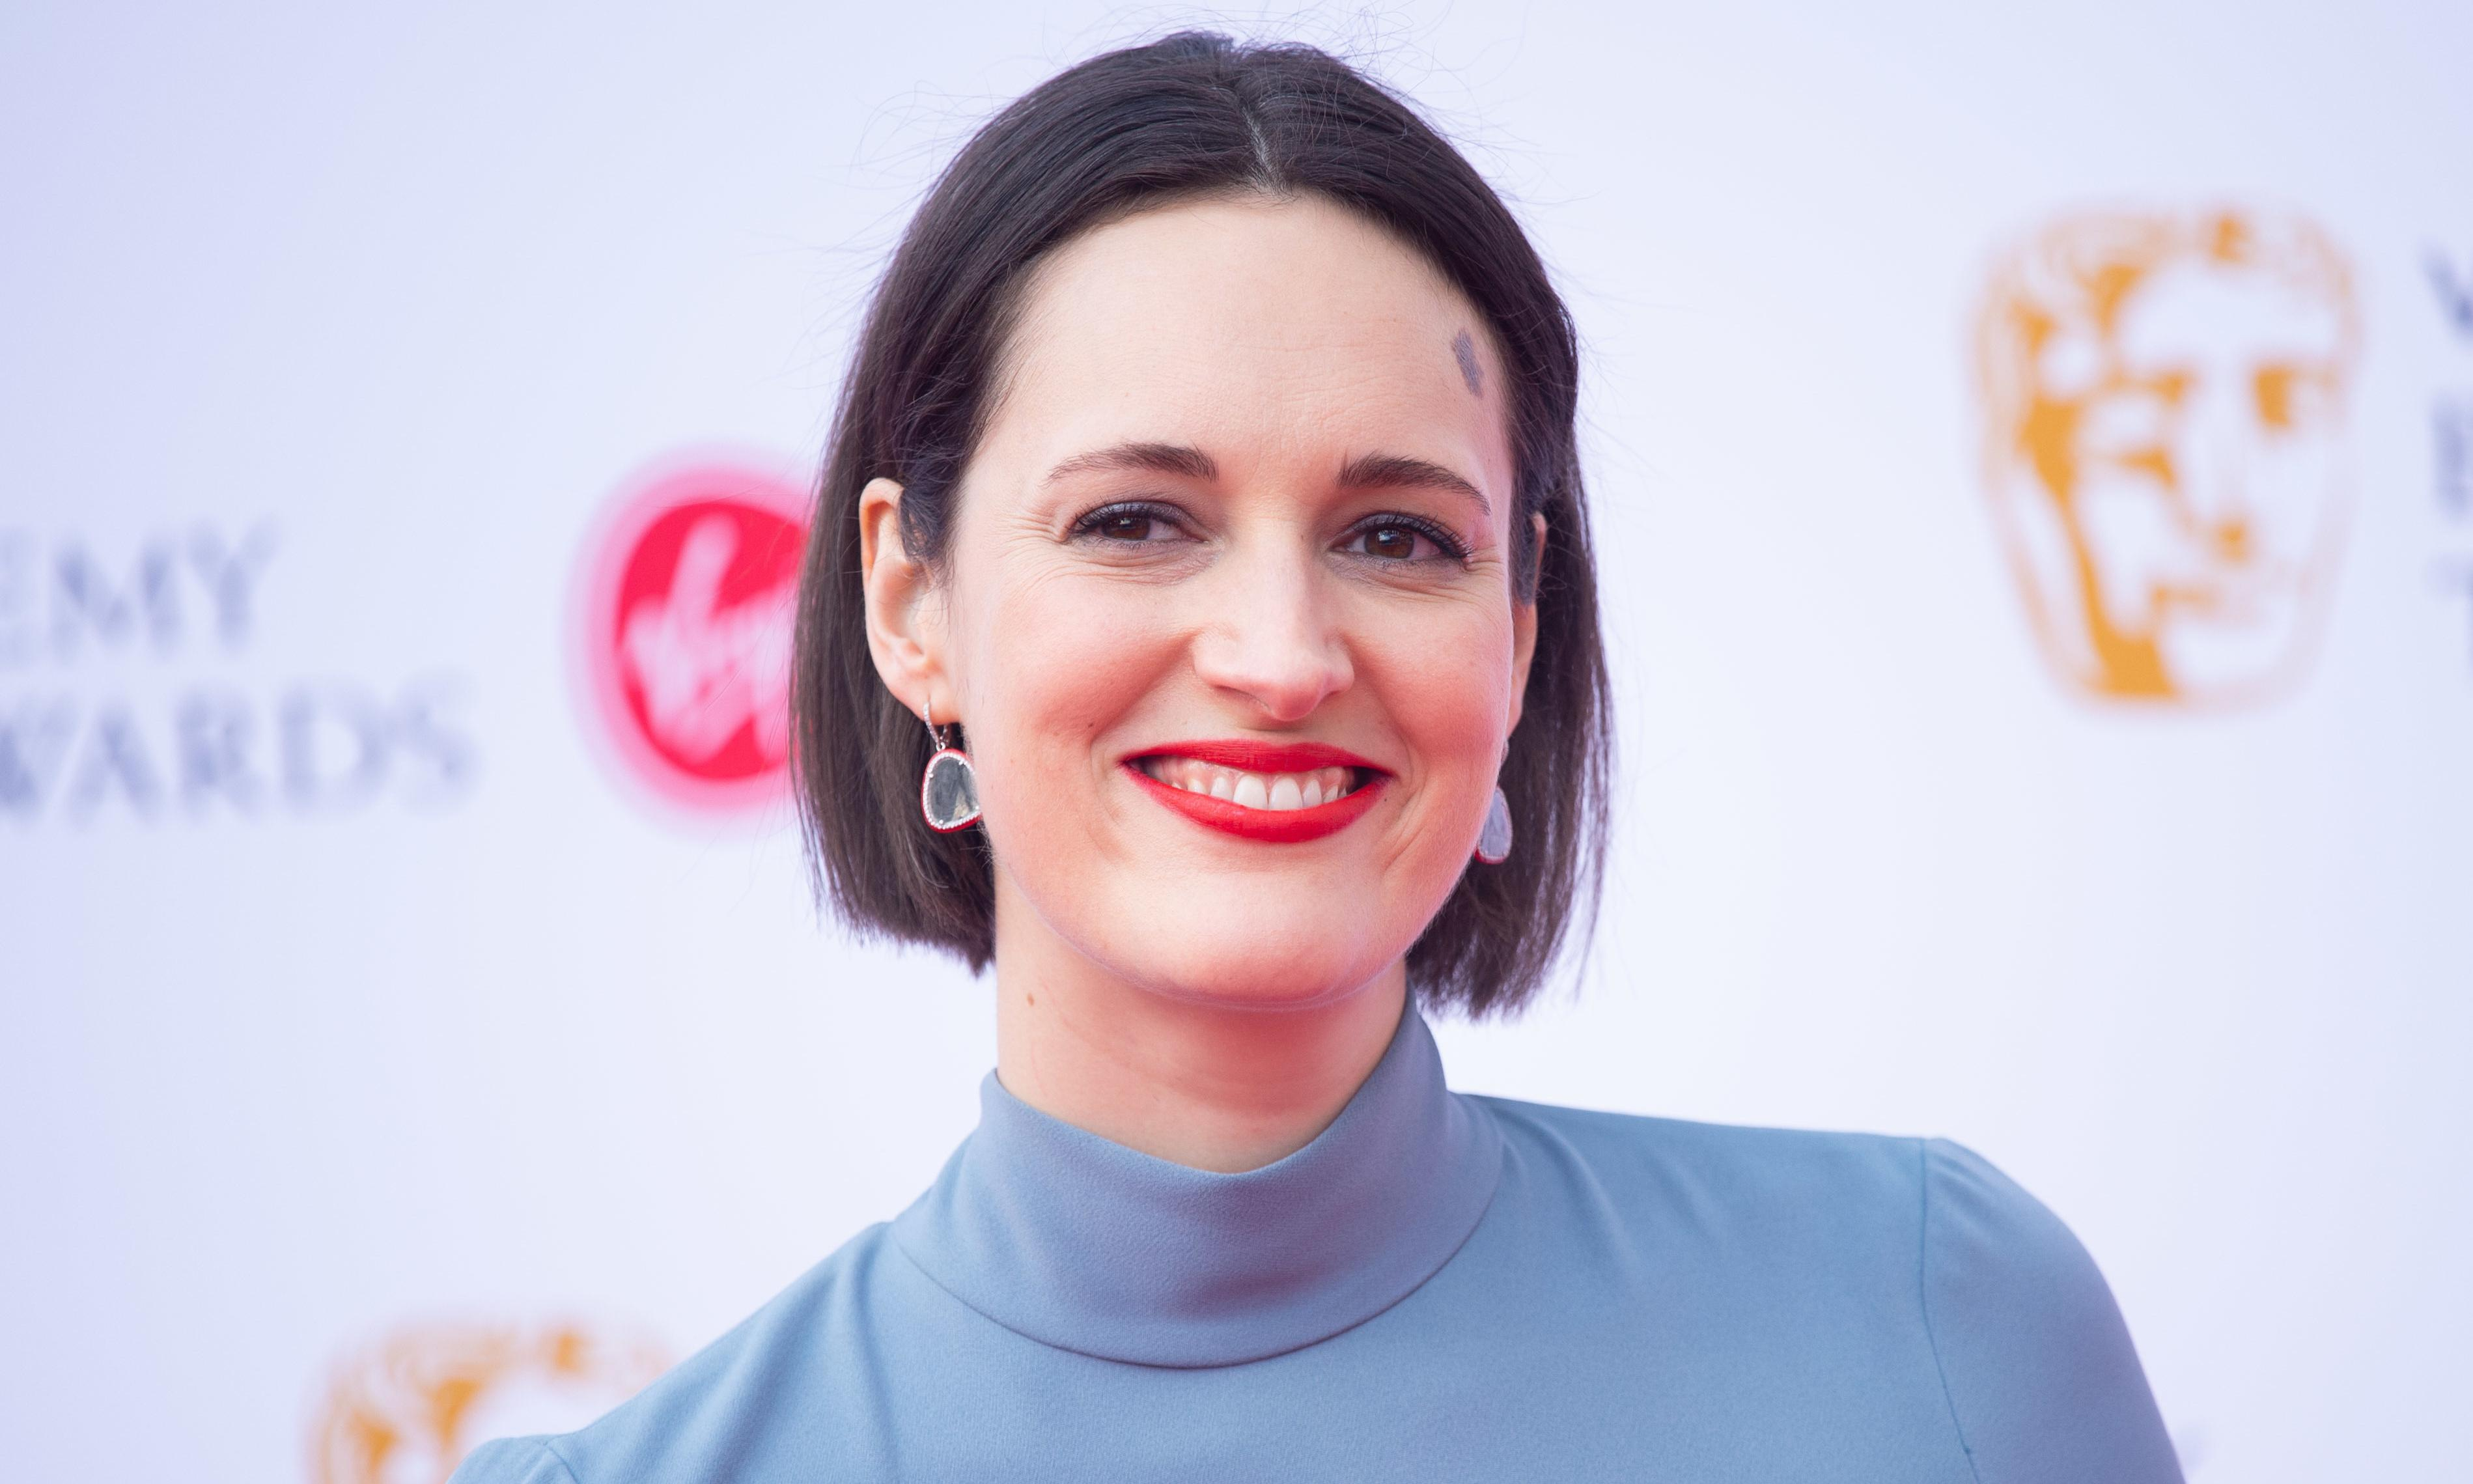 Phoebe Waller-Bridge: I was not hired for Bond because of my gender